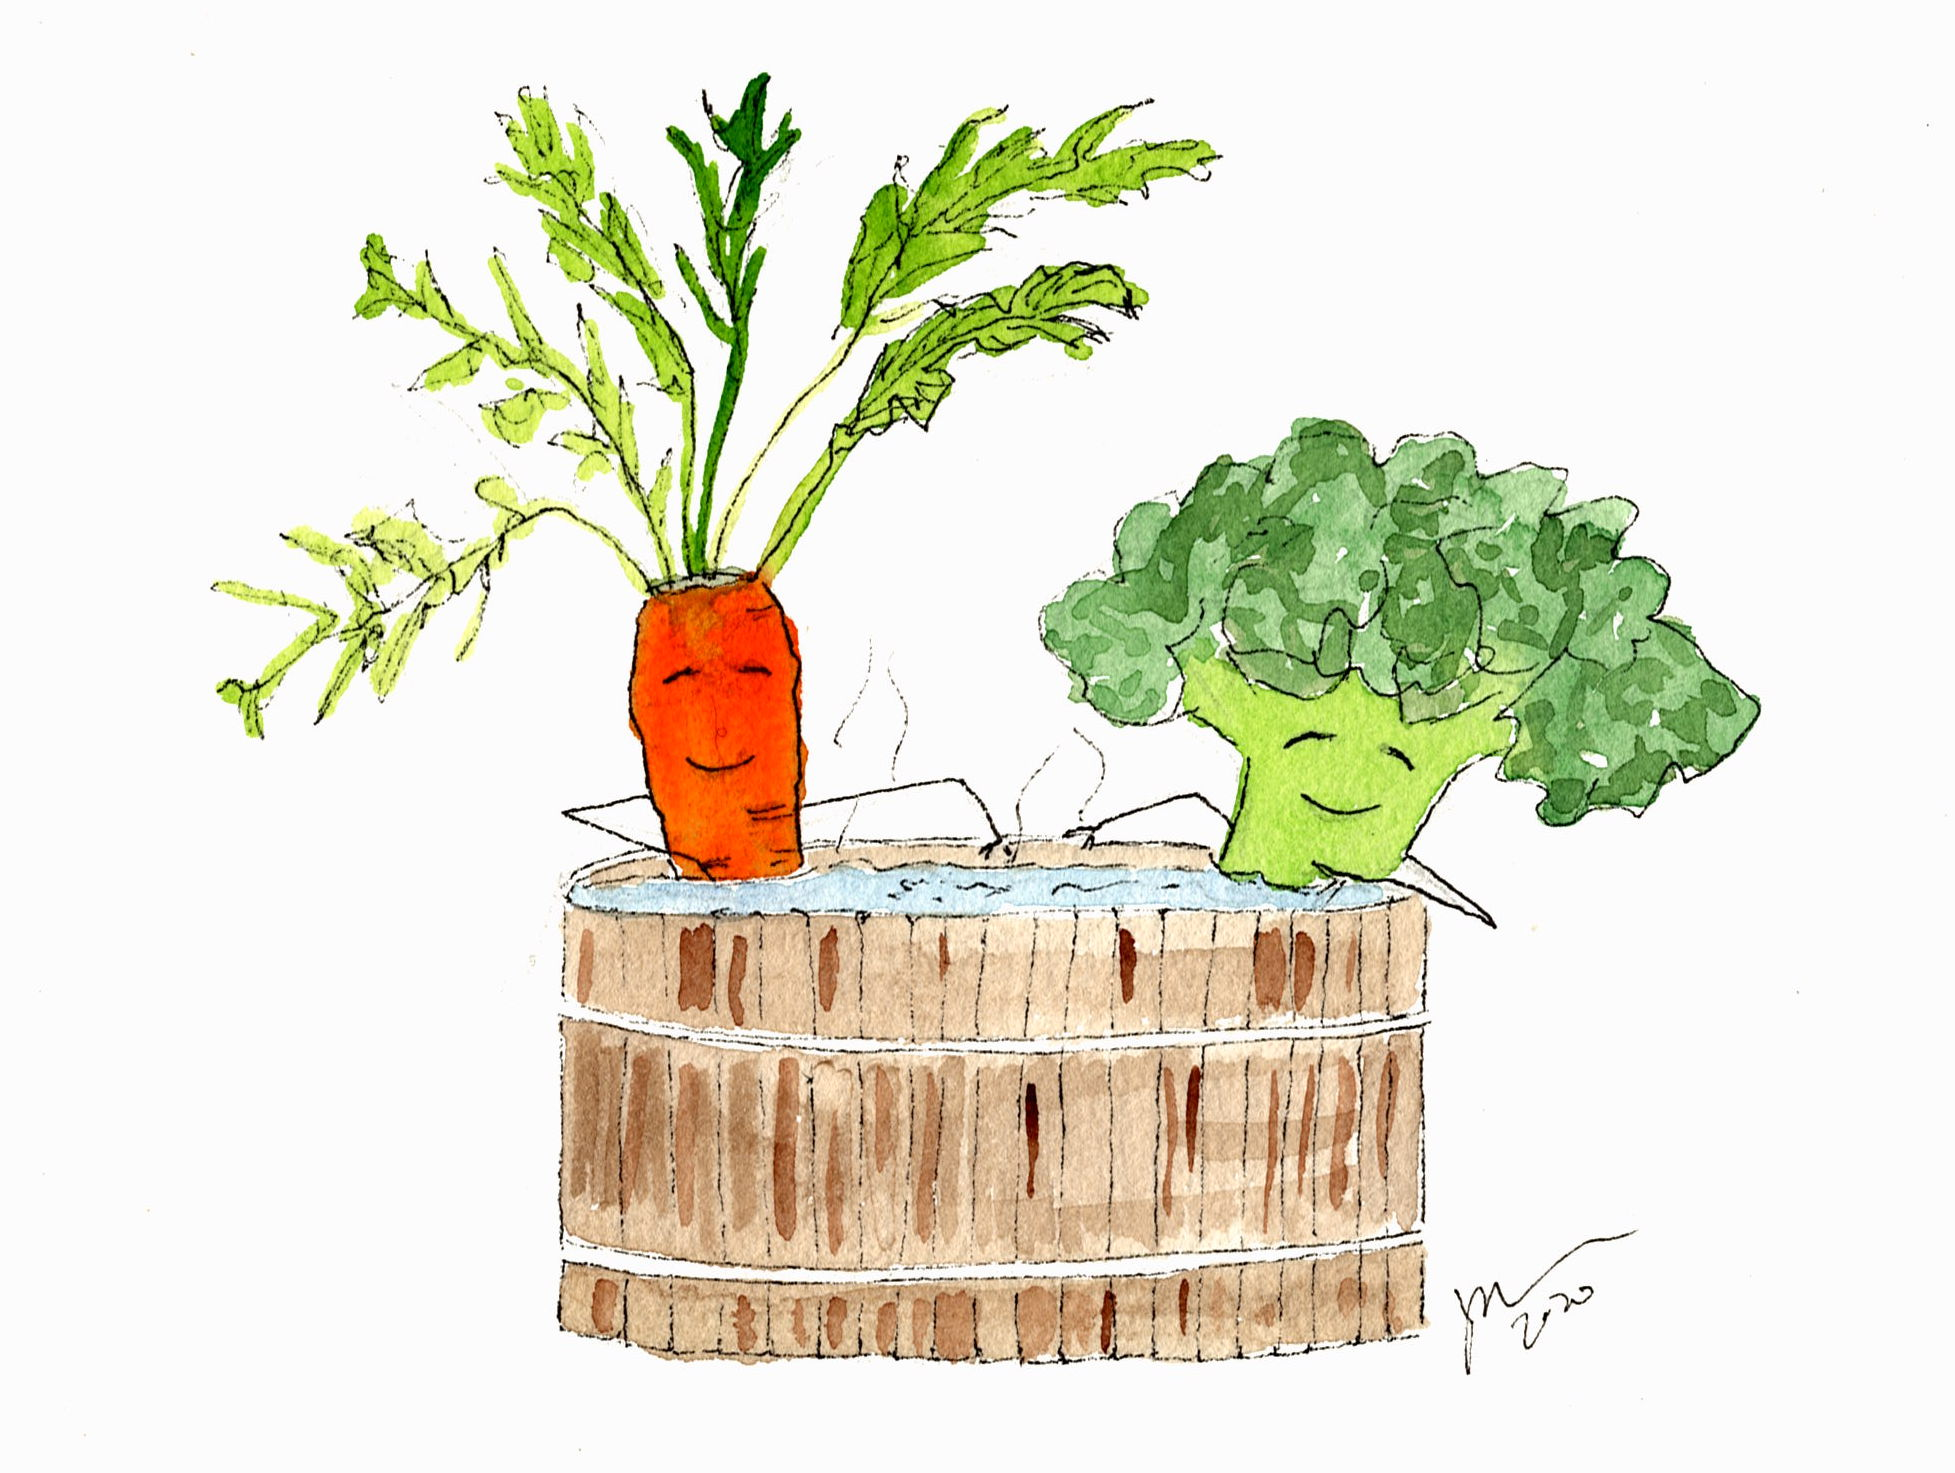 watercolor of carrot and broccoli in a hottub. they are smiling.